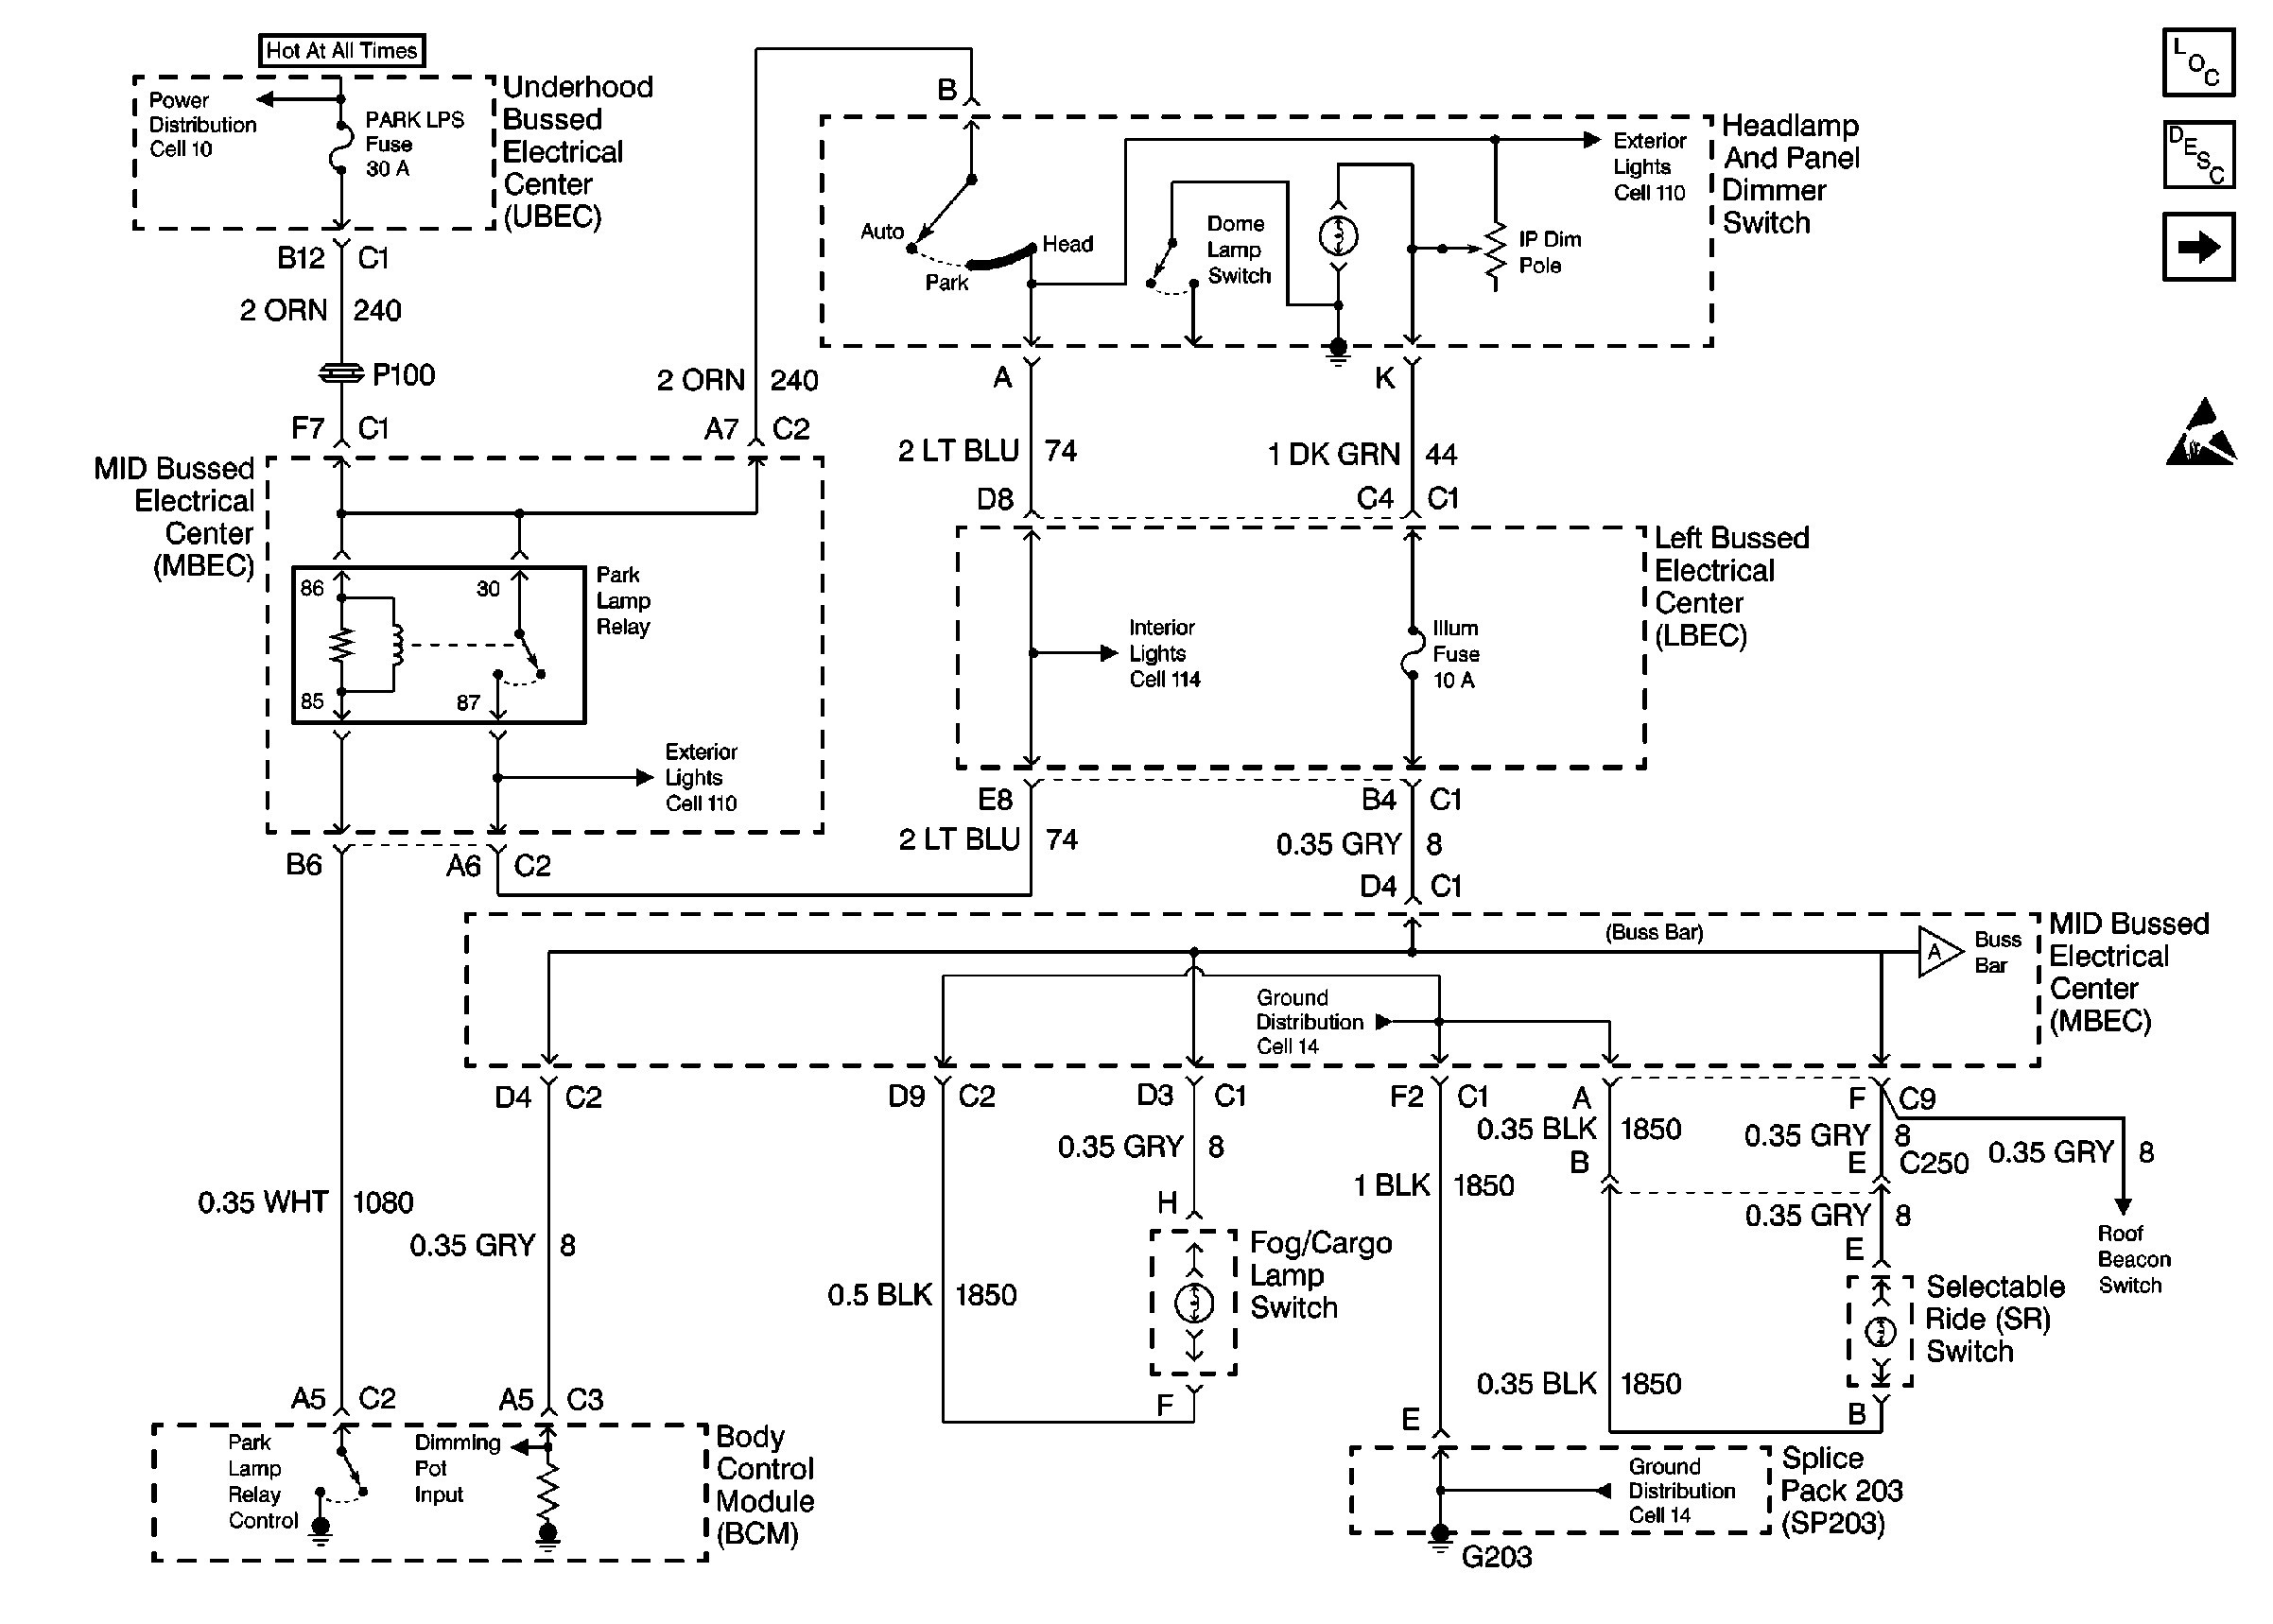 Chevy Tahoe Parts Diagram Chevy Tahoe Trailer Wiring Diagram Collection Of Chevy Tahoe Parts Diagram